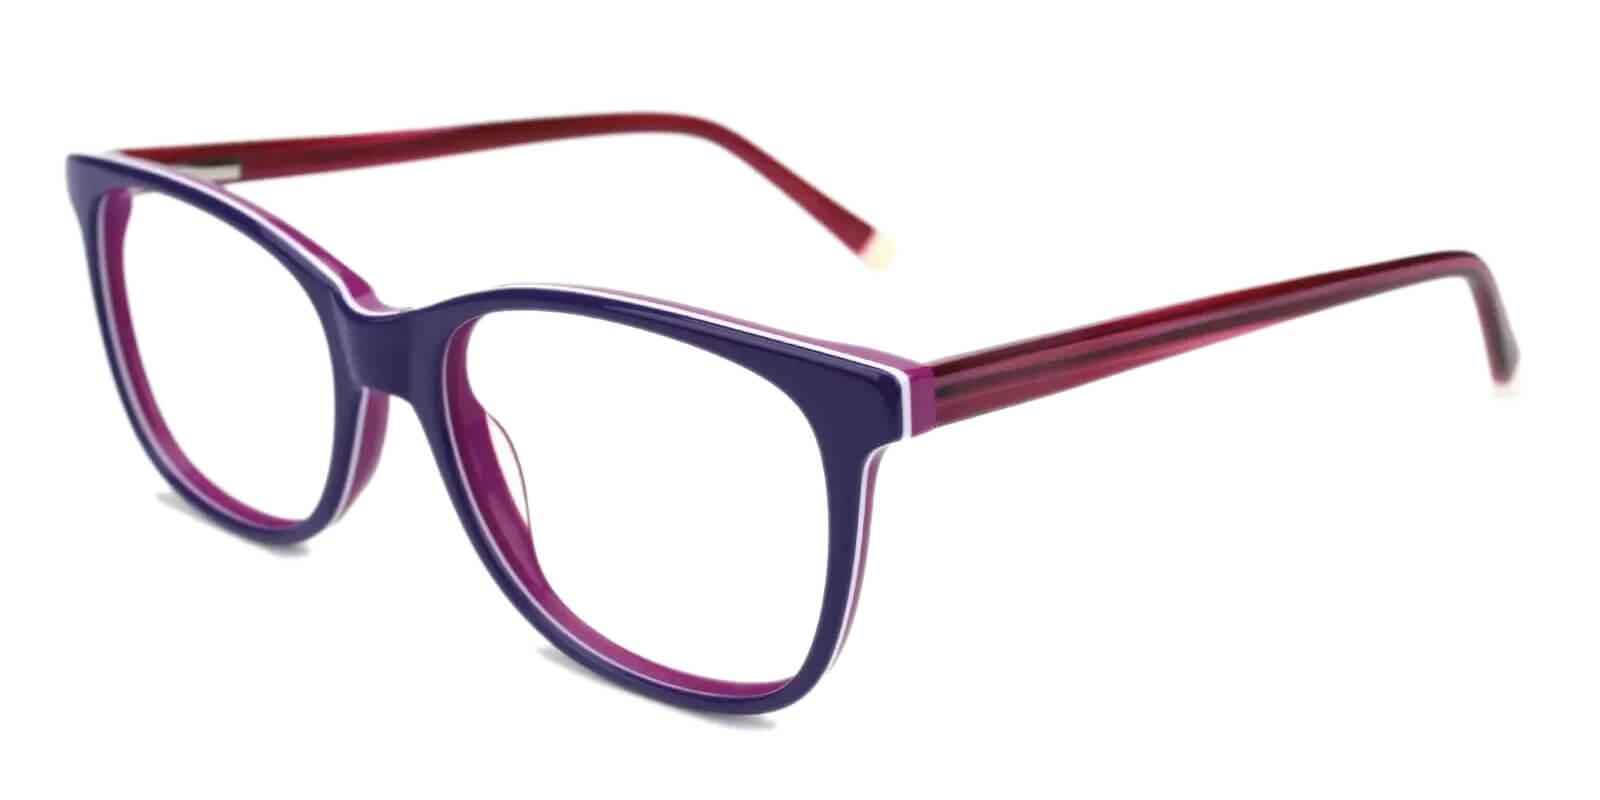 Hibbard Blue Acetate Eyeglasses , SpringHinges , UniversalBridgeFit Frames from ABBE Glasses